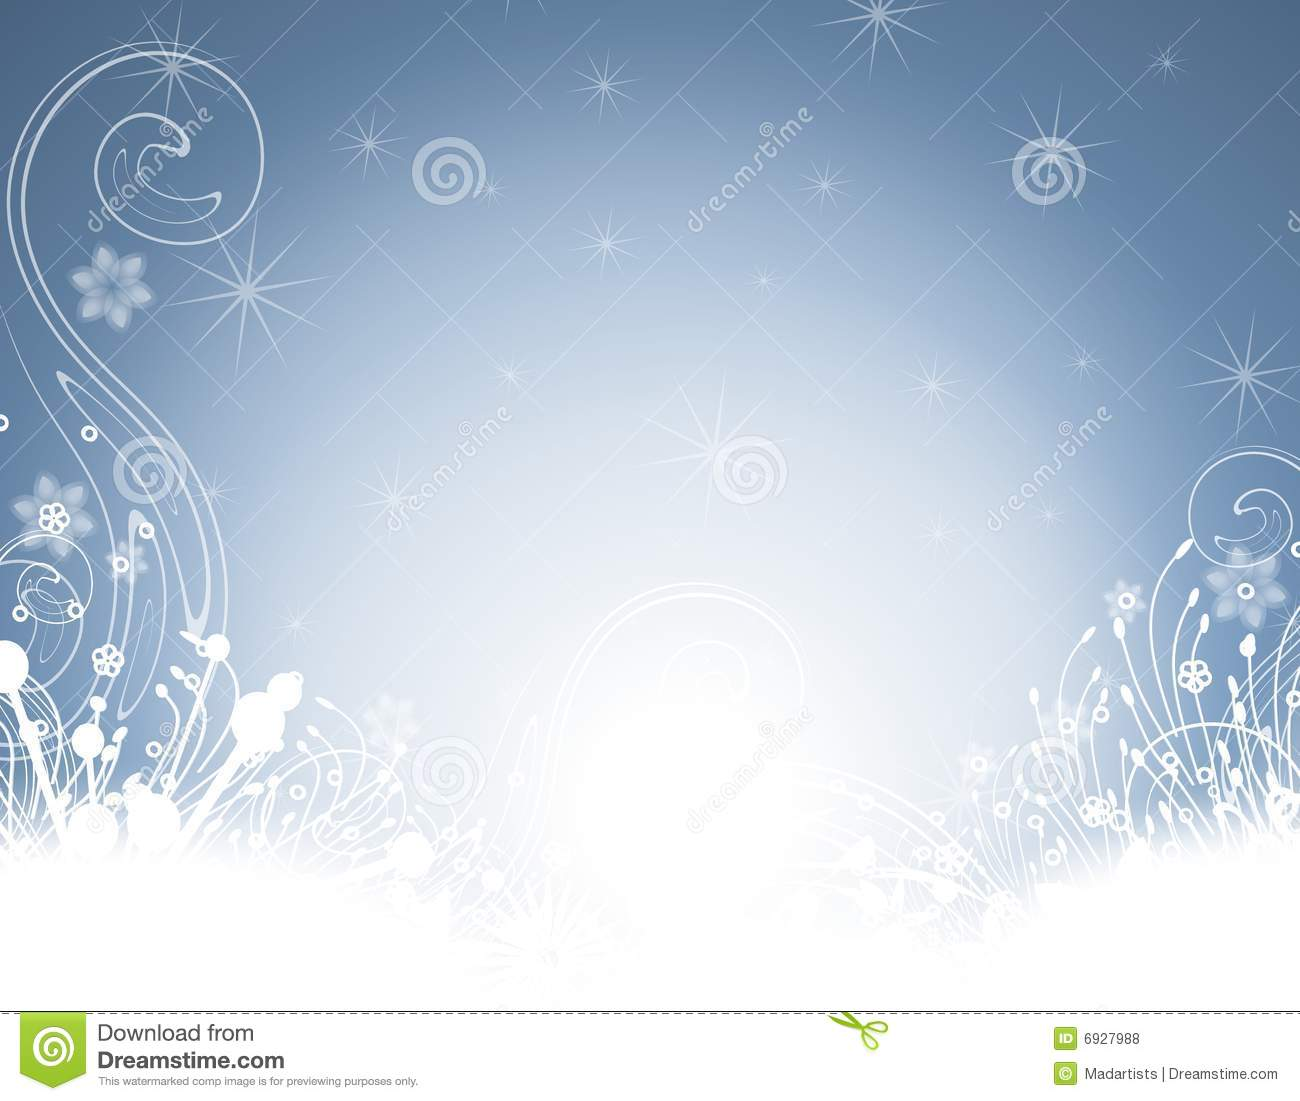 new year or christmas winter garden party background flat design